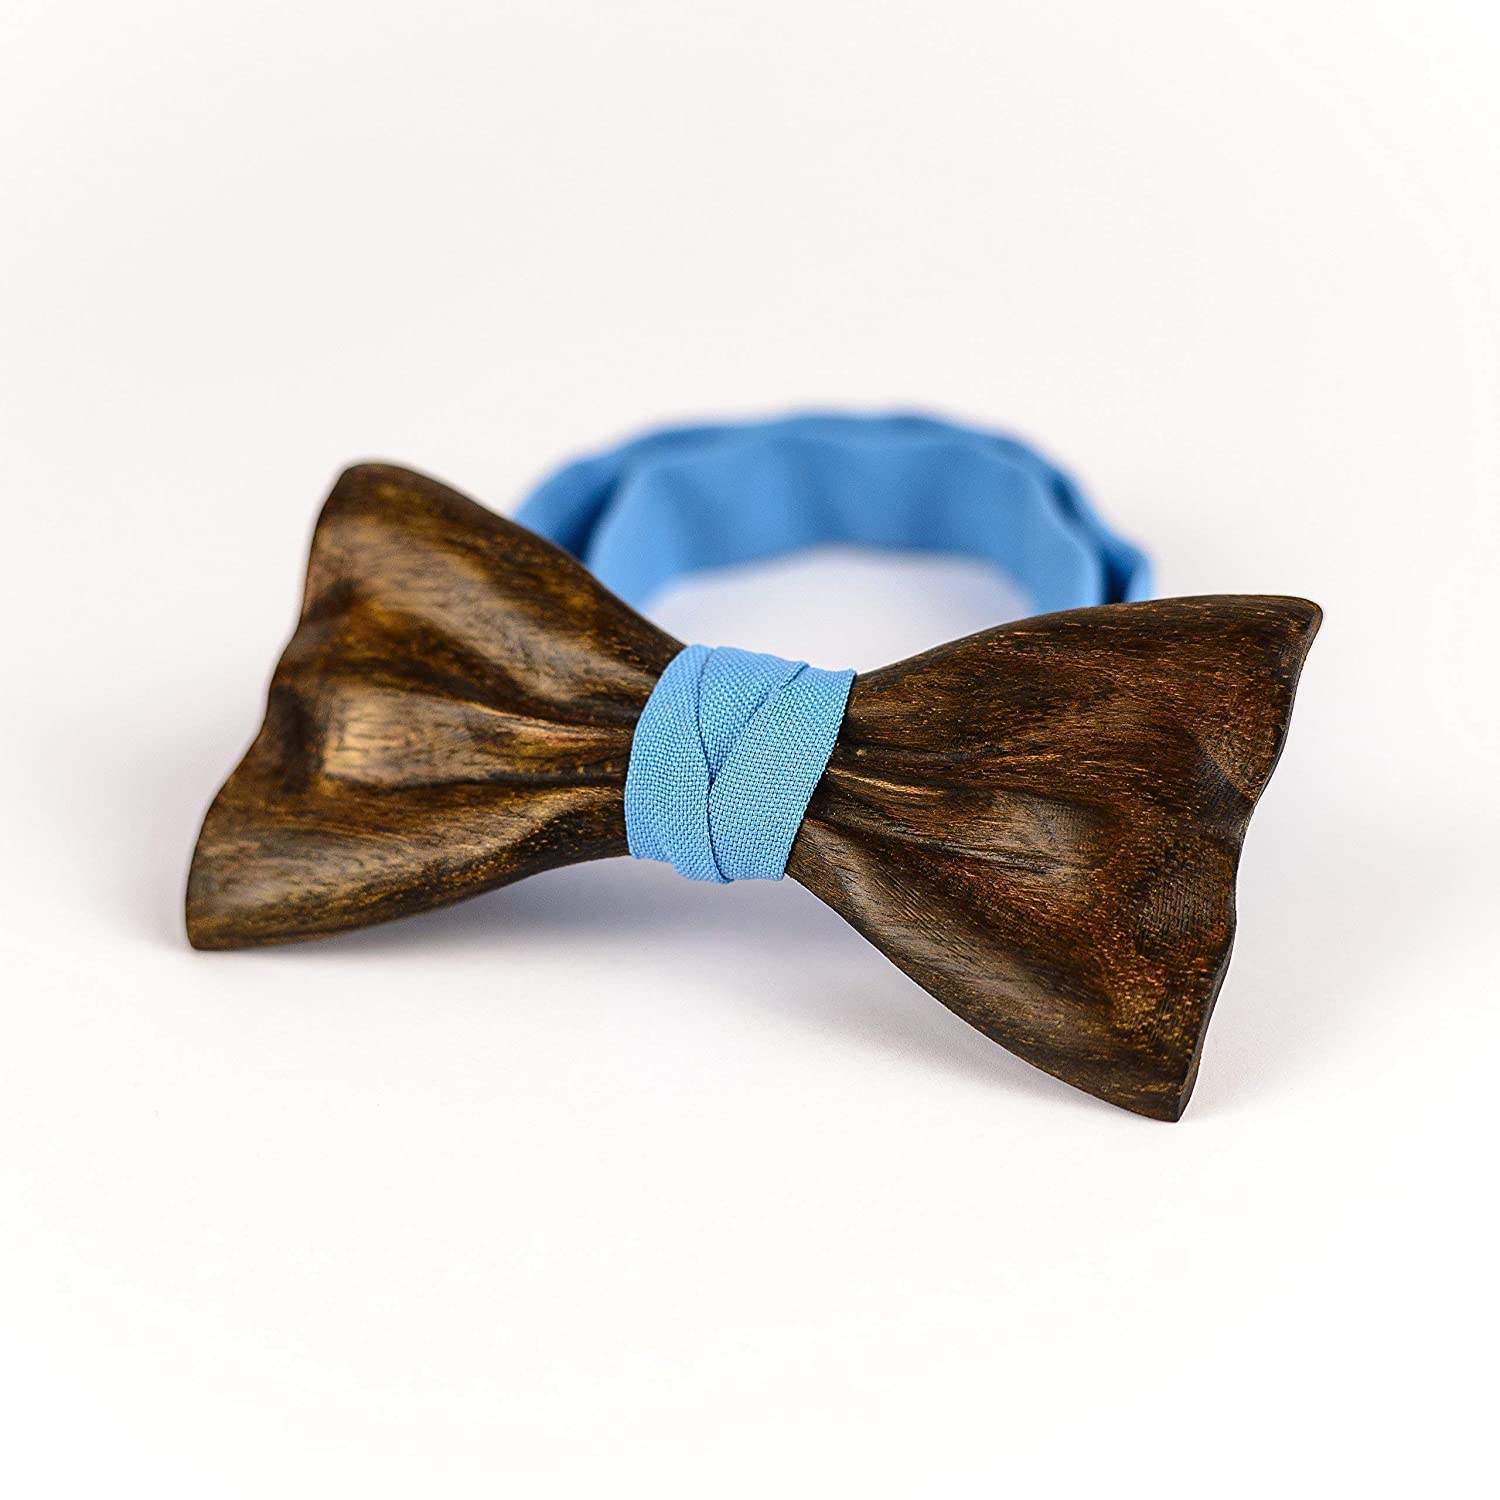 Wooden Bow Tie Men Wedding Party Wood Bowtie Groomsmen Gift Handmade Necktie